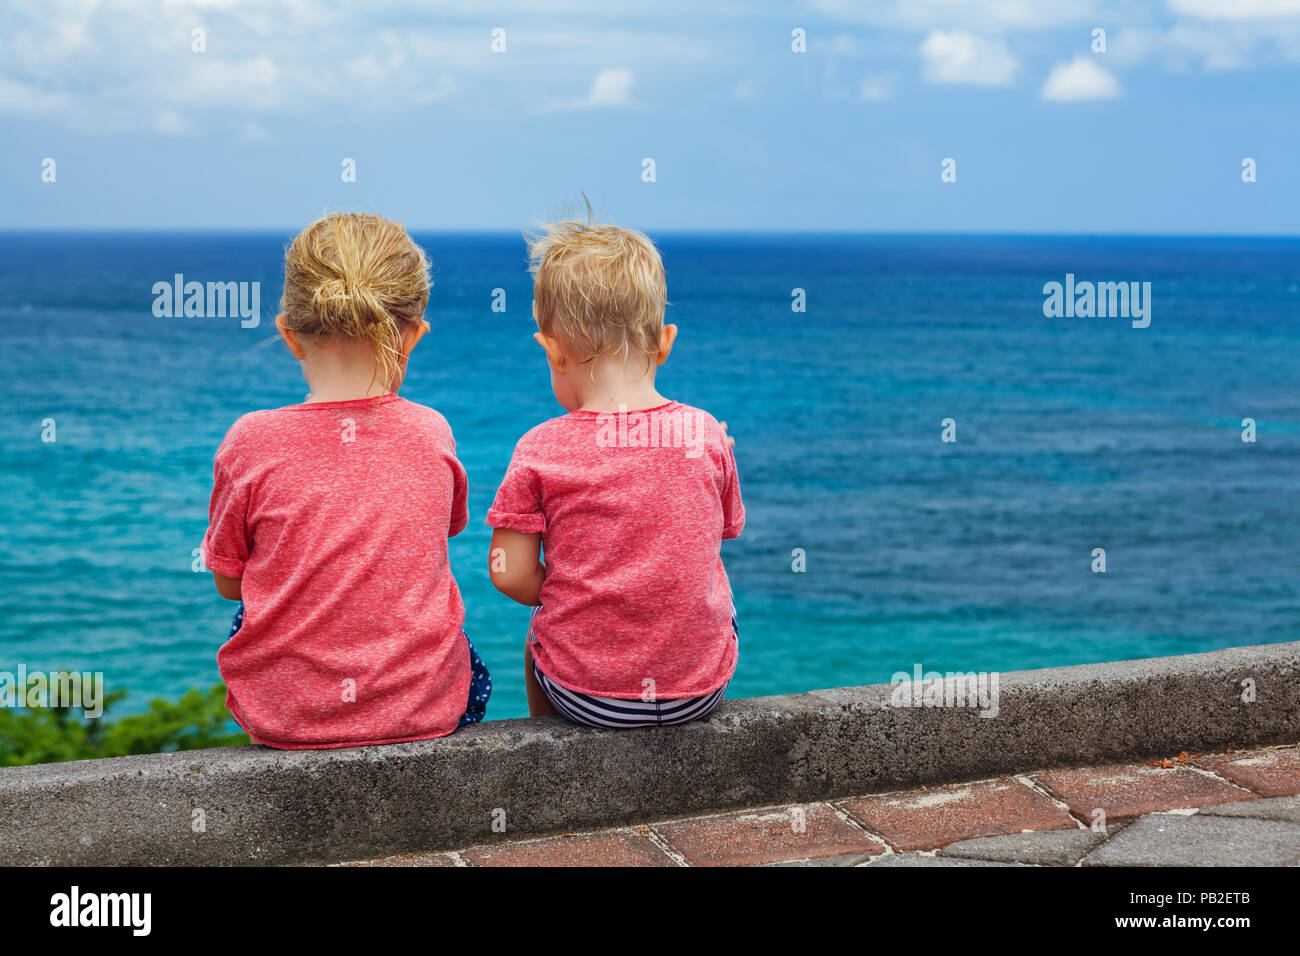 Happy kids have fun on beach walk. Couple of children sit on cliff top, talk, look at sea surf and blue sky. Travel lifestyle, outdoor activities in f - Stock Image